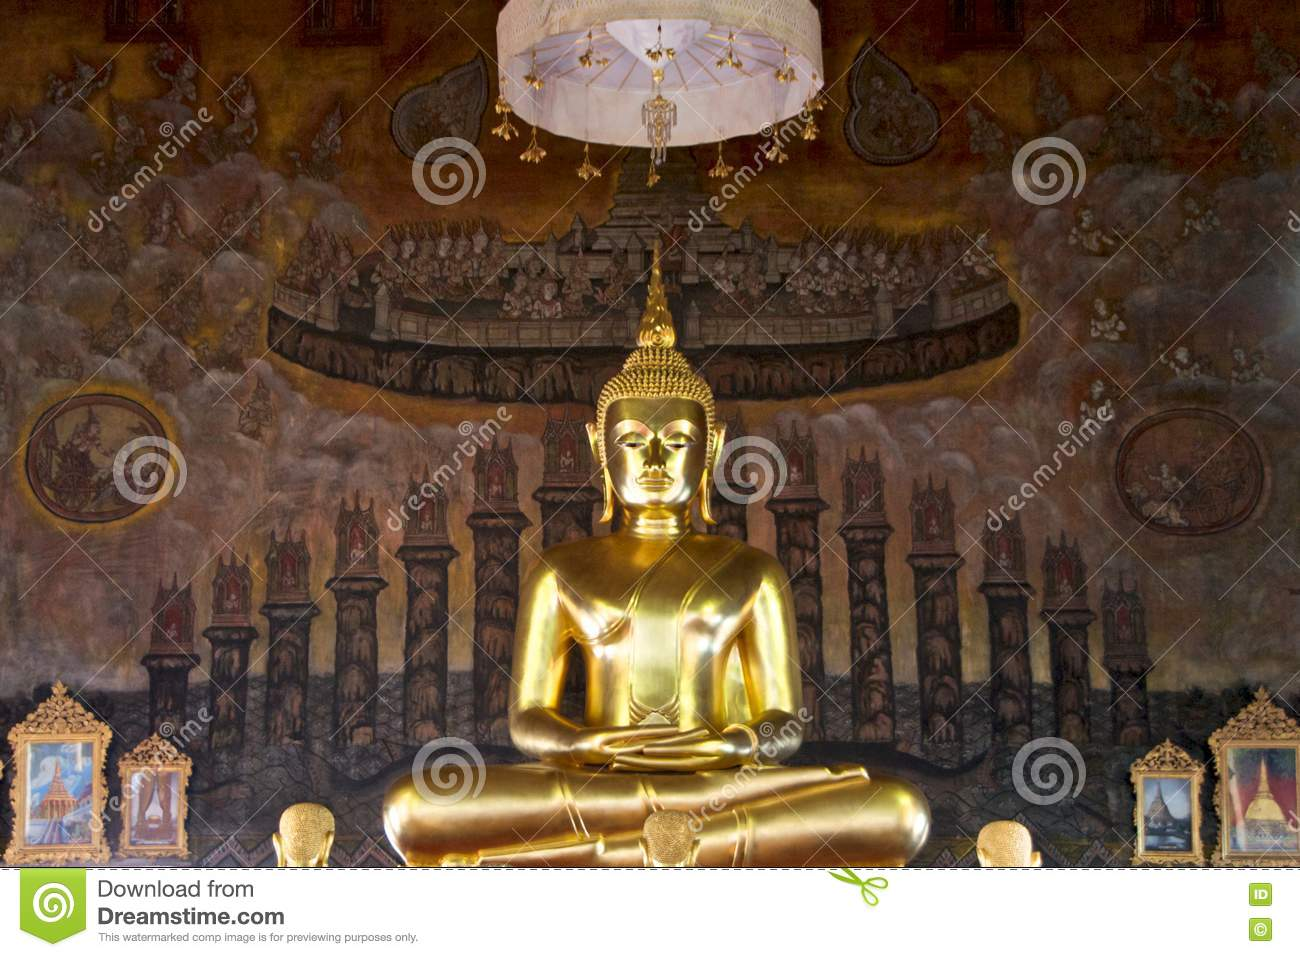 Golden buddha statue on mural background royalty free for Buddha mural art